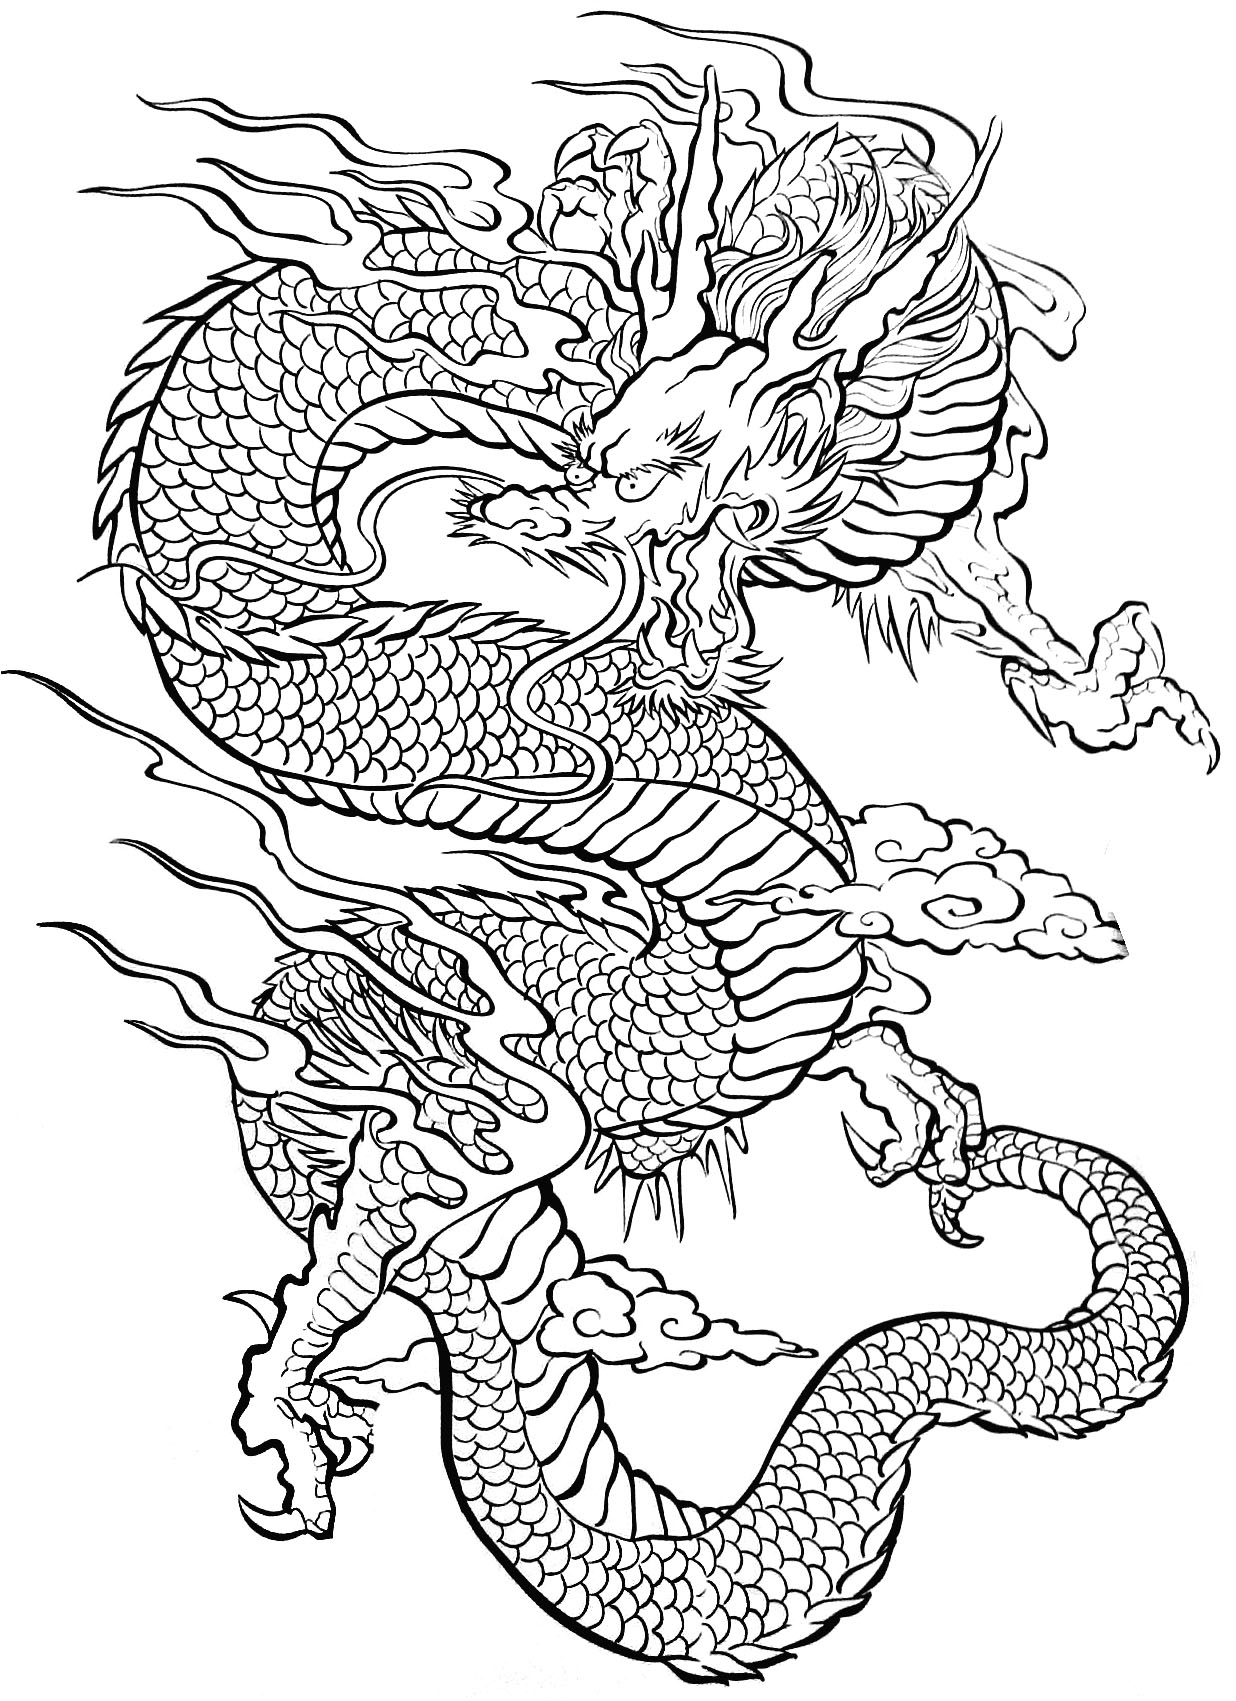 tatouage dragon image with dragon creature imaginary from the gallery - Dragon Coloring Pages For Adults